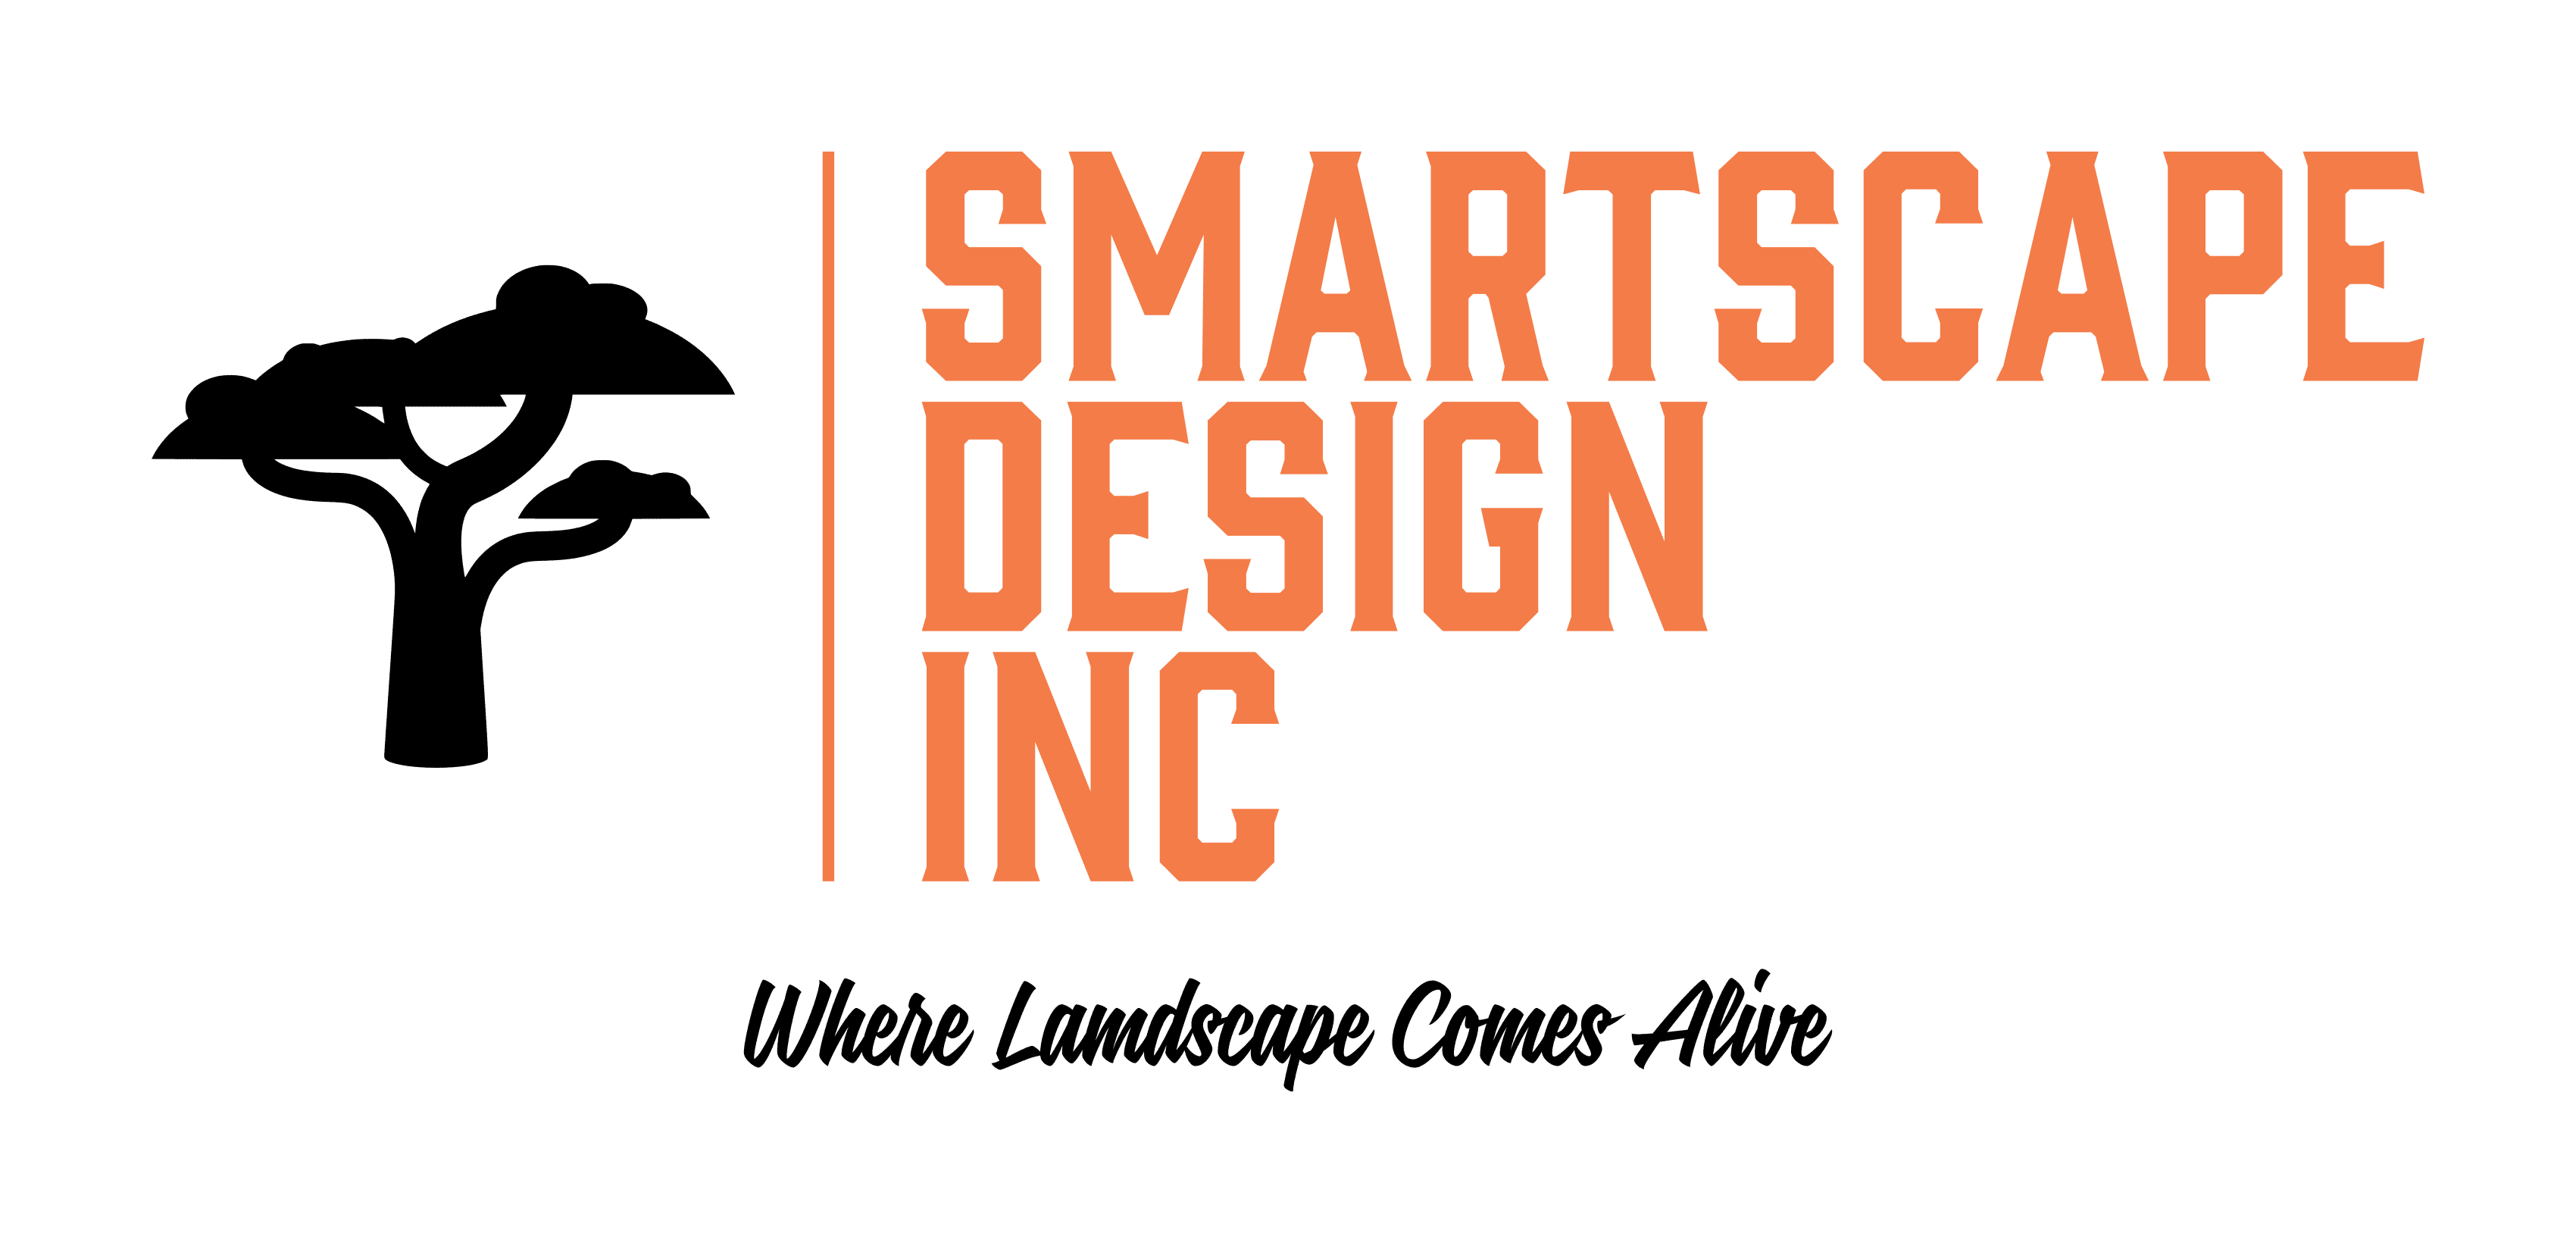 Smartscape Design Inc